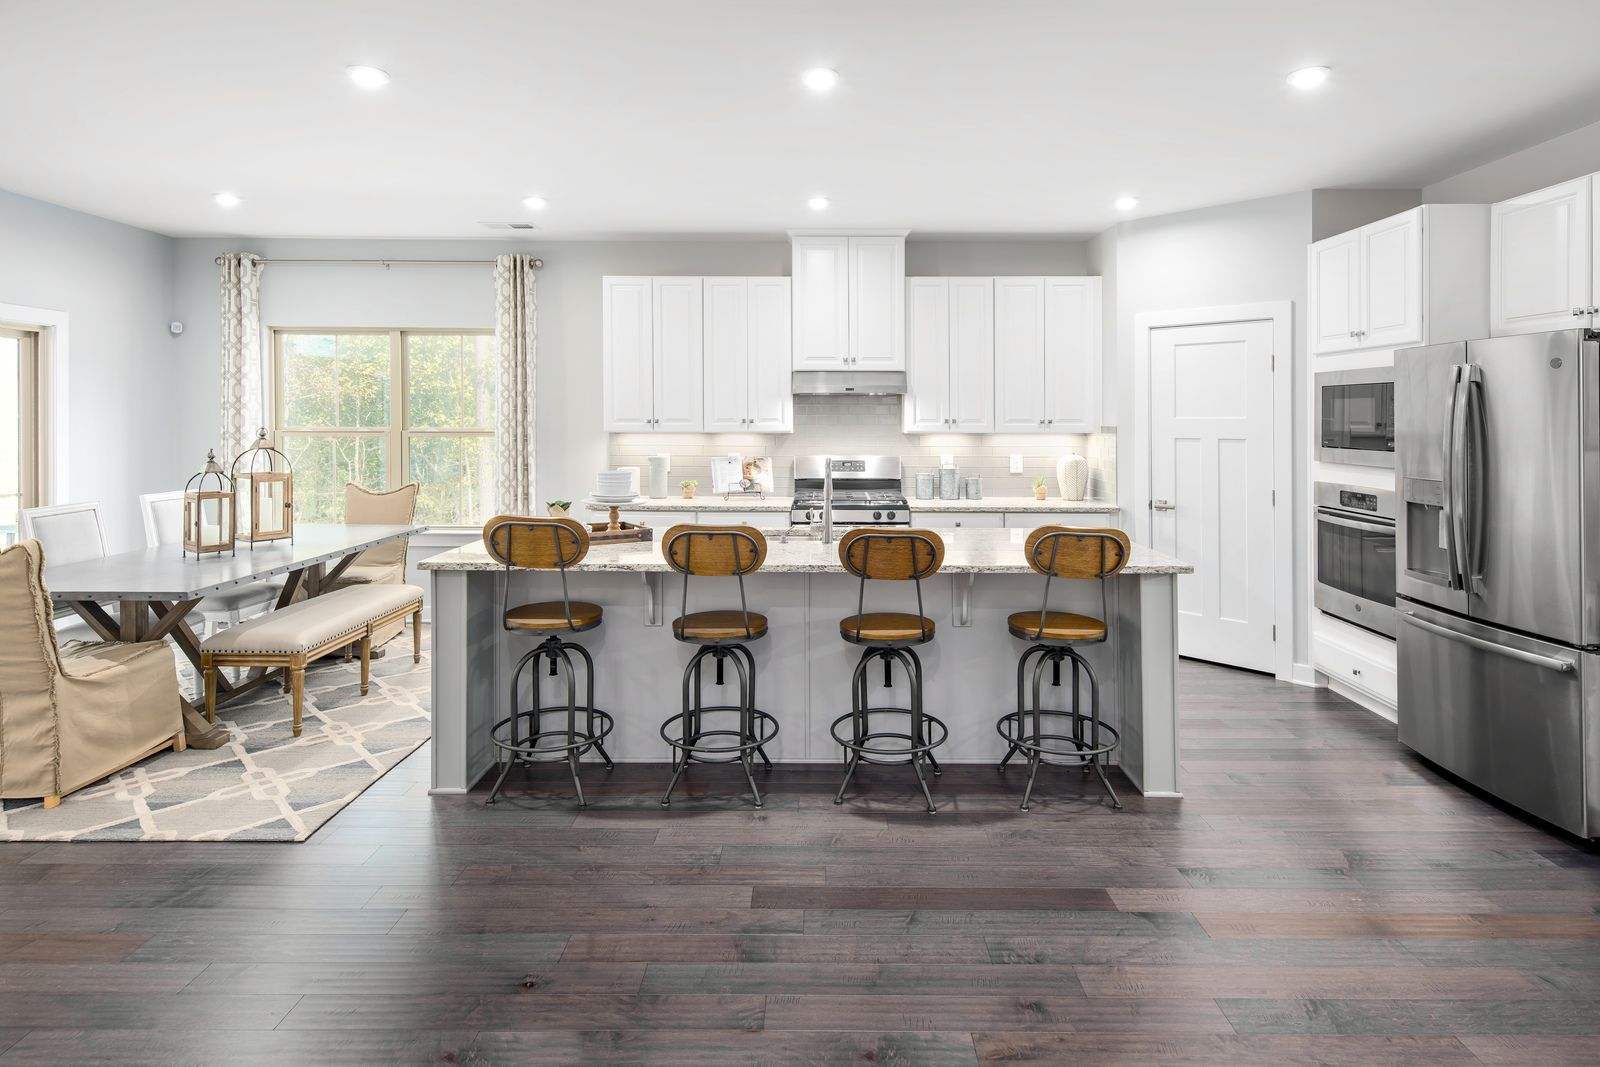 Kitchen featured in the Lehigh at The Preserve By Ryan Homes in Richmond-Petersburg, VA